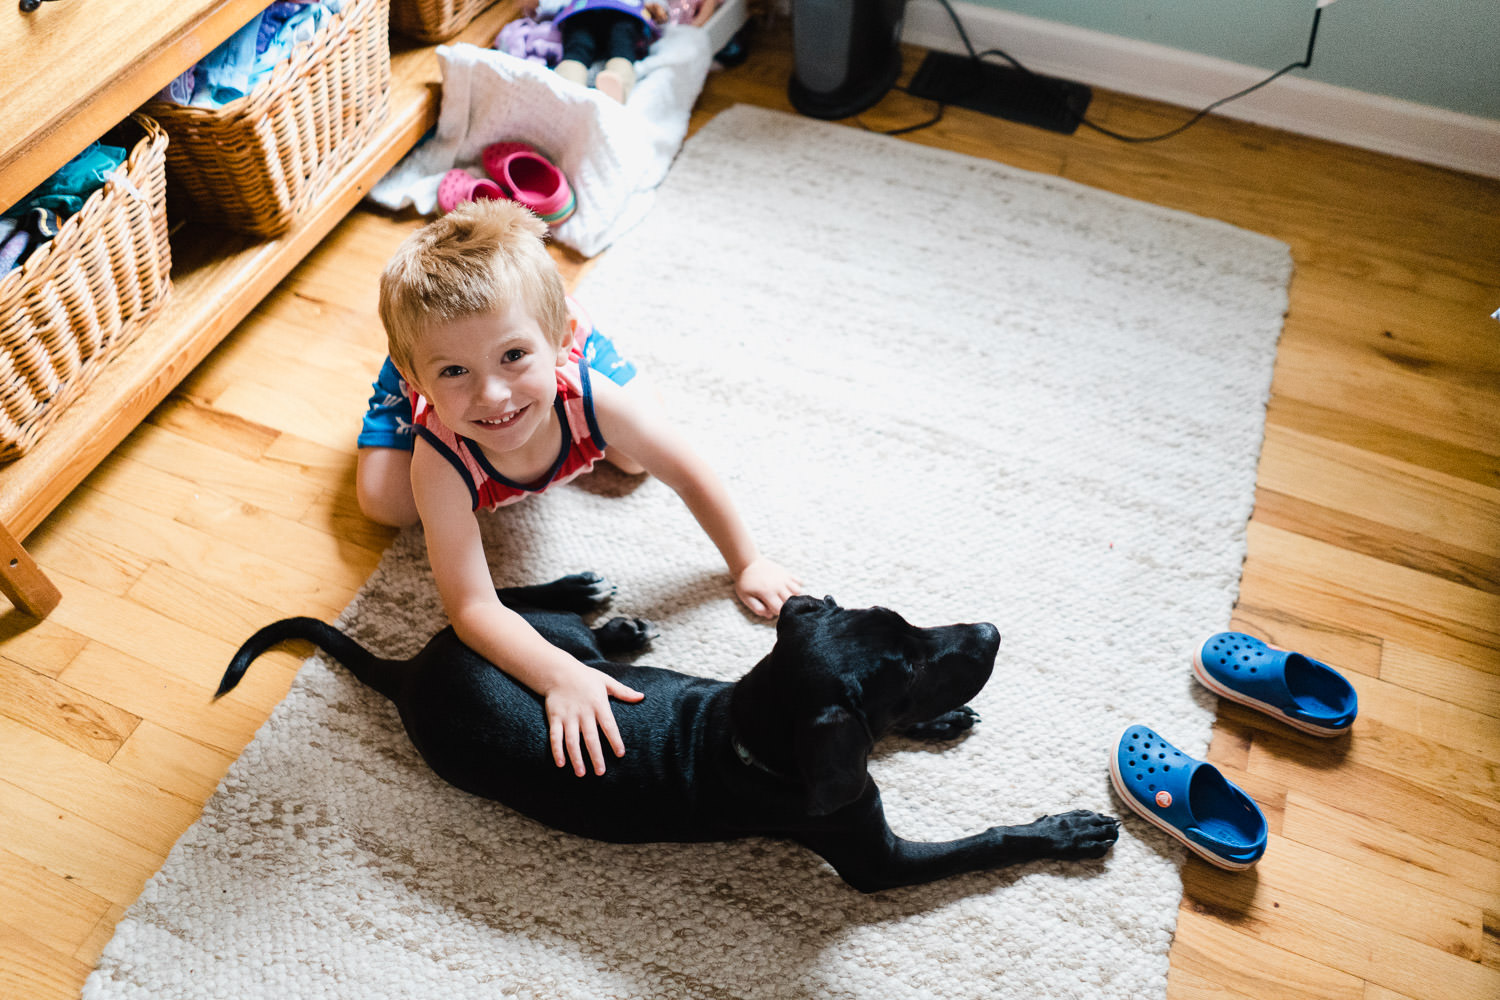 A little boy pets his dog on the floor of his room.